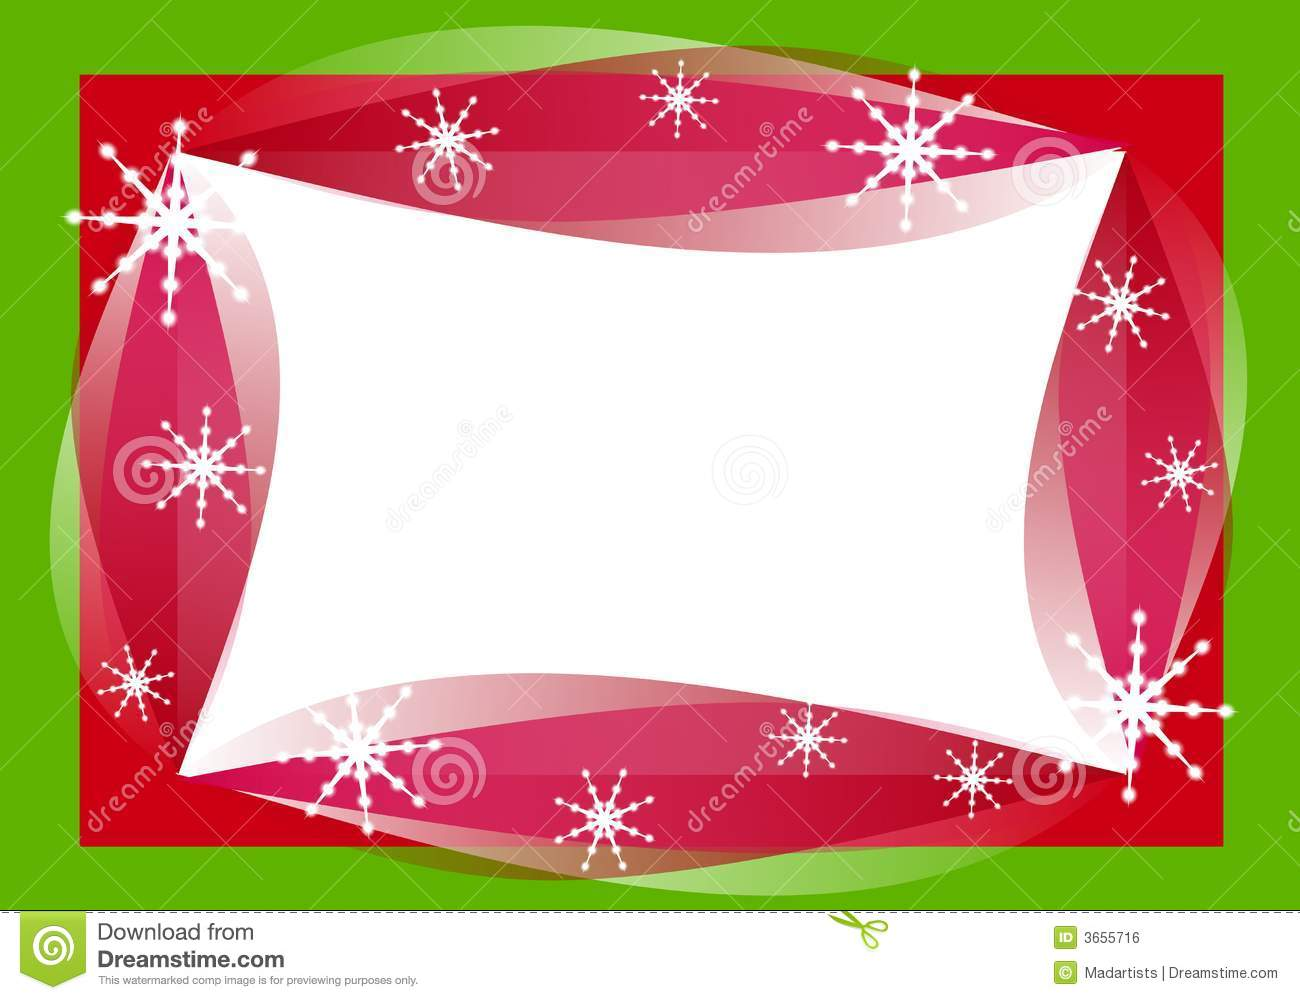 1611 Christmas Borders free clipart.